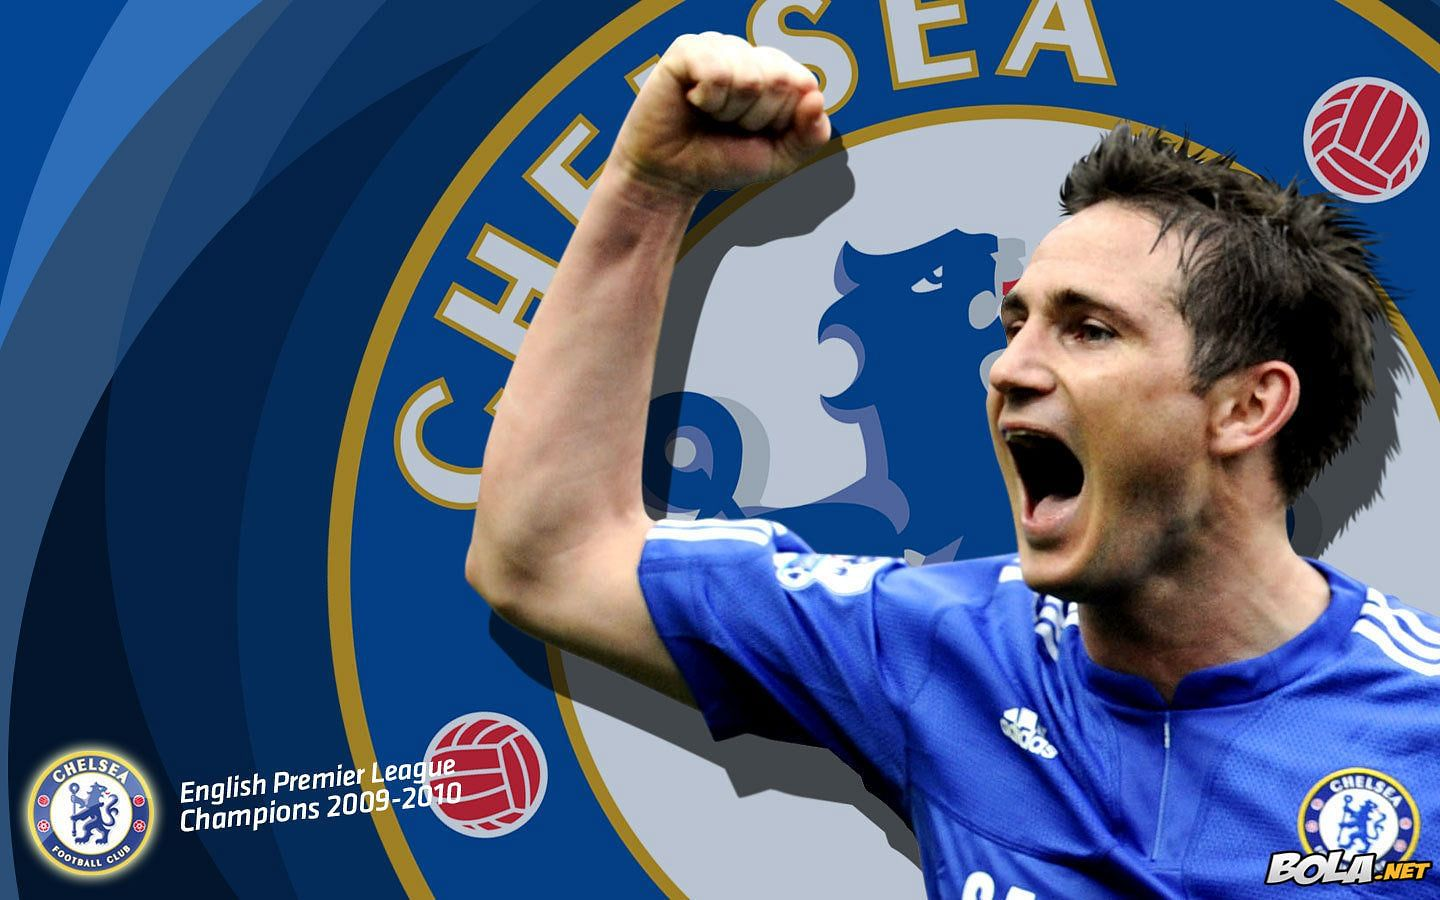 Frank Lampard's Top 10 goals for Chelsea